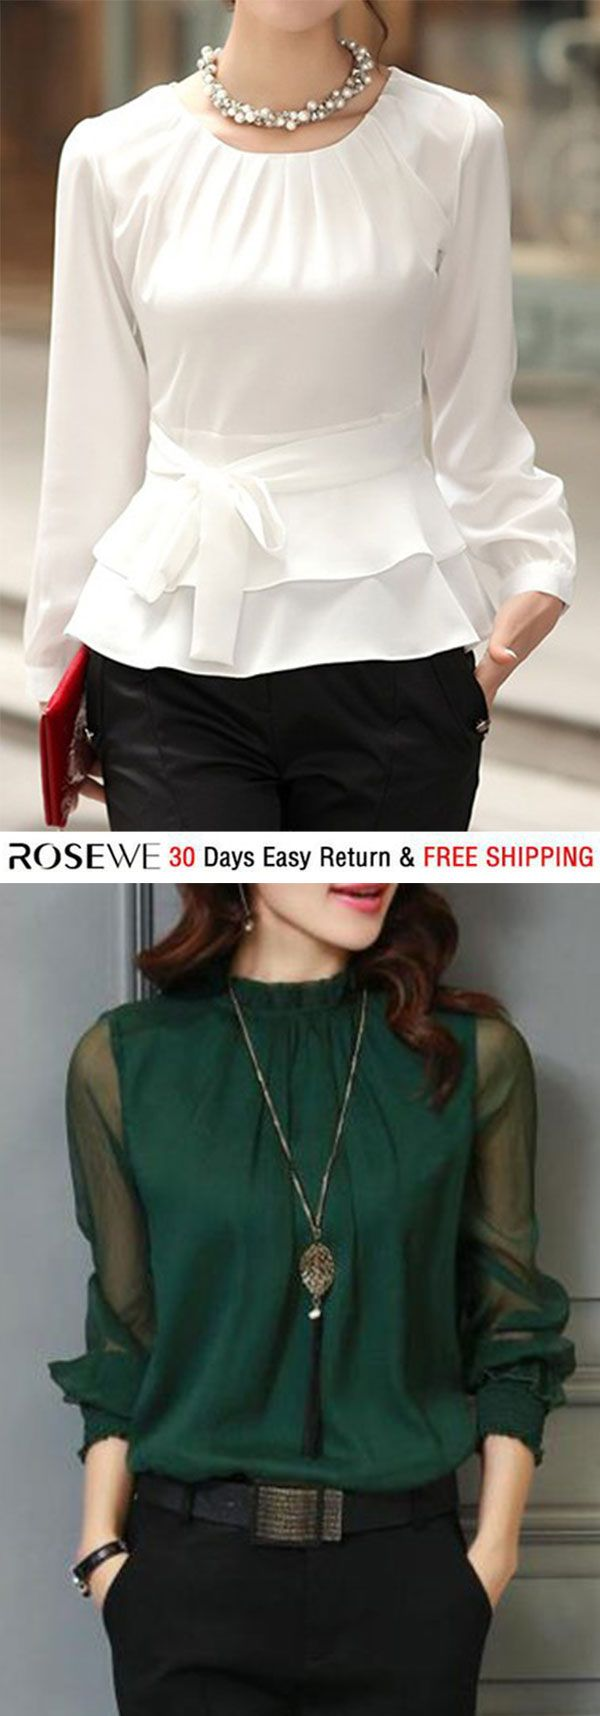 7ef55923719f13 Layered Long Sleeve White Tie Front Blouse. rosewe blouse